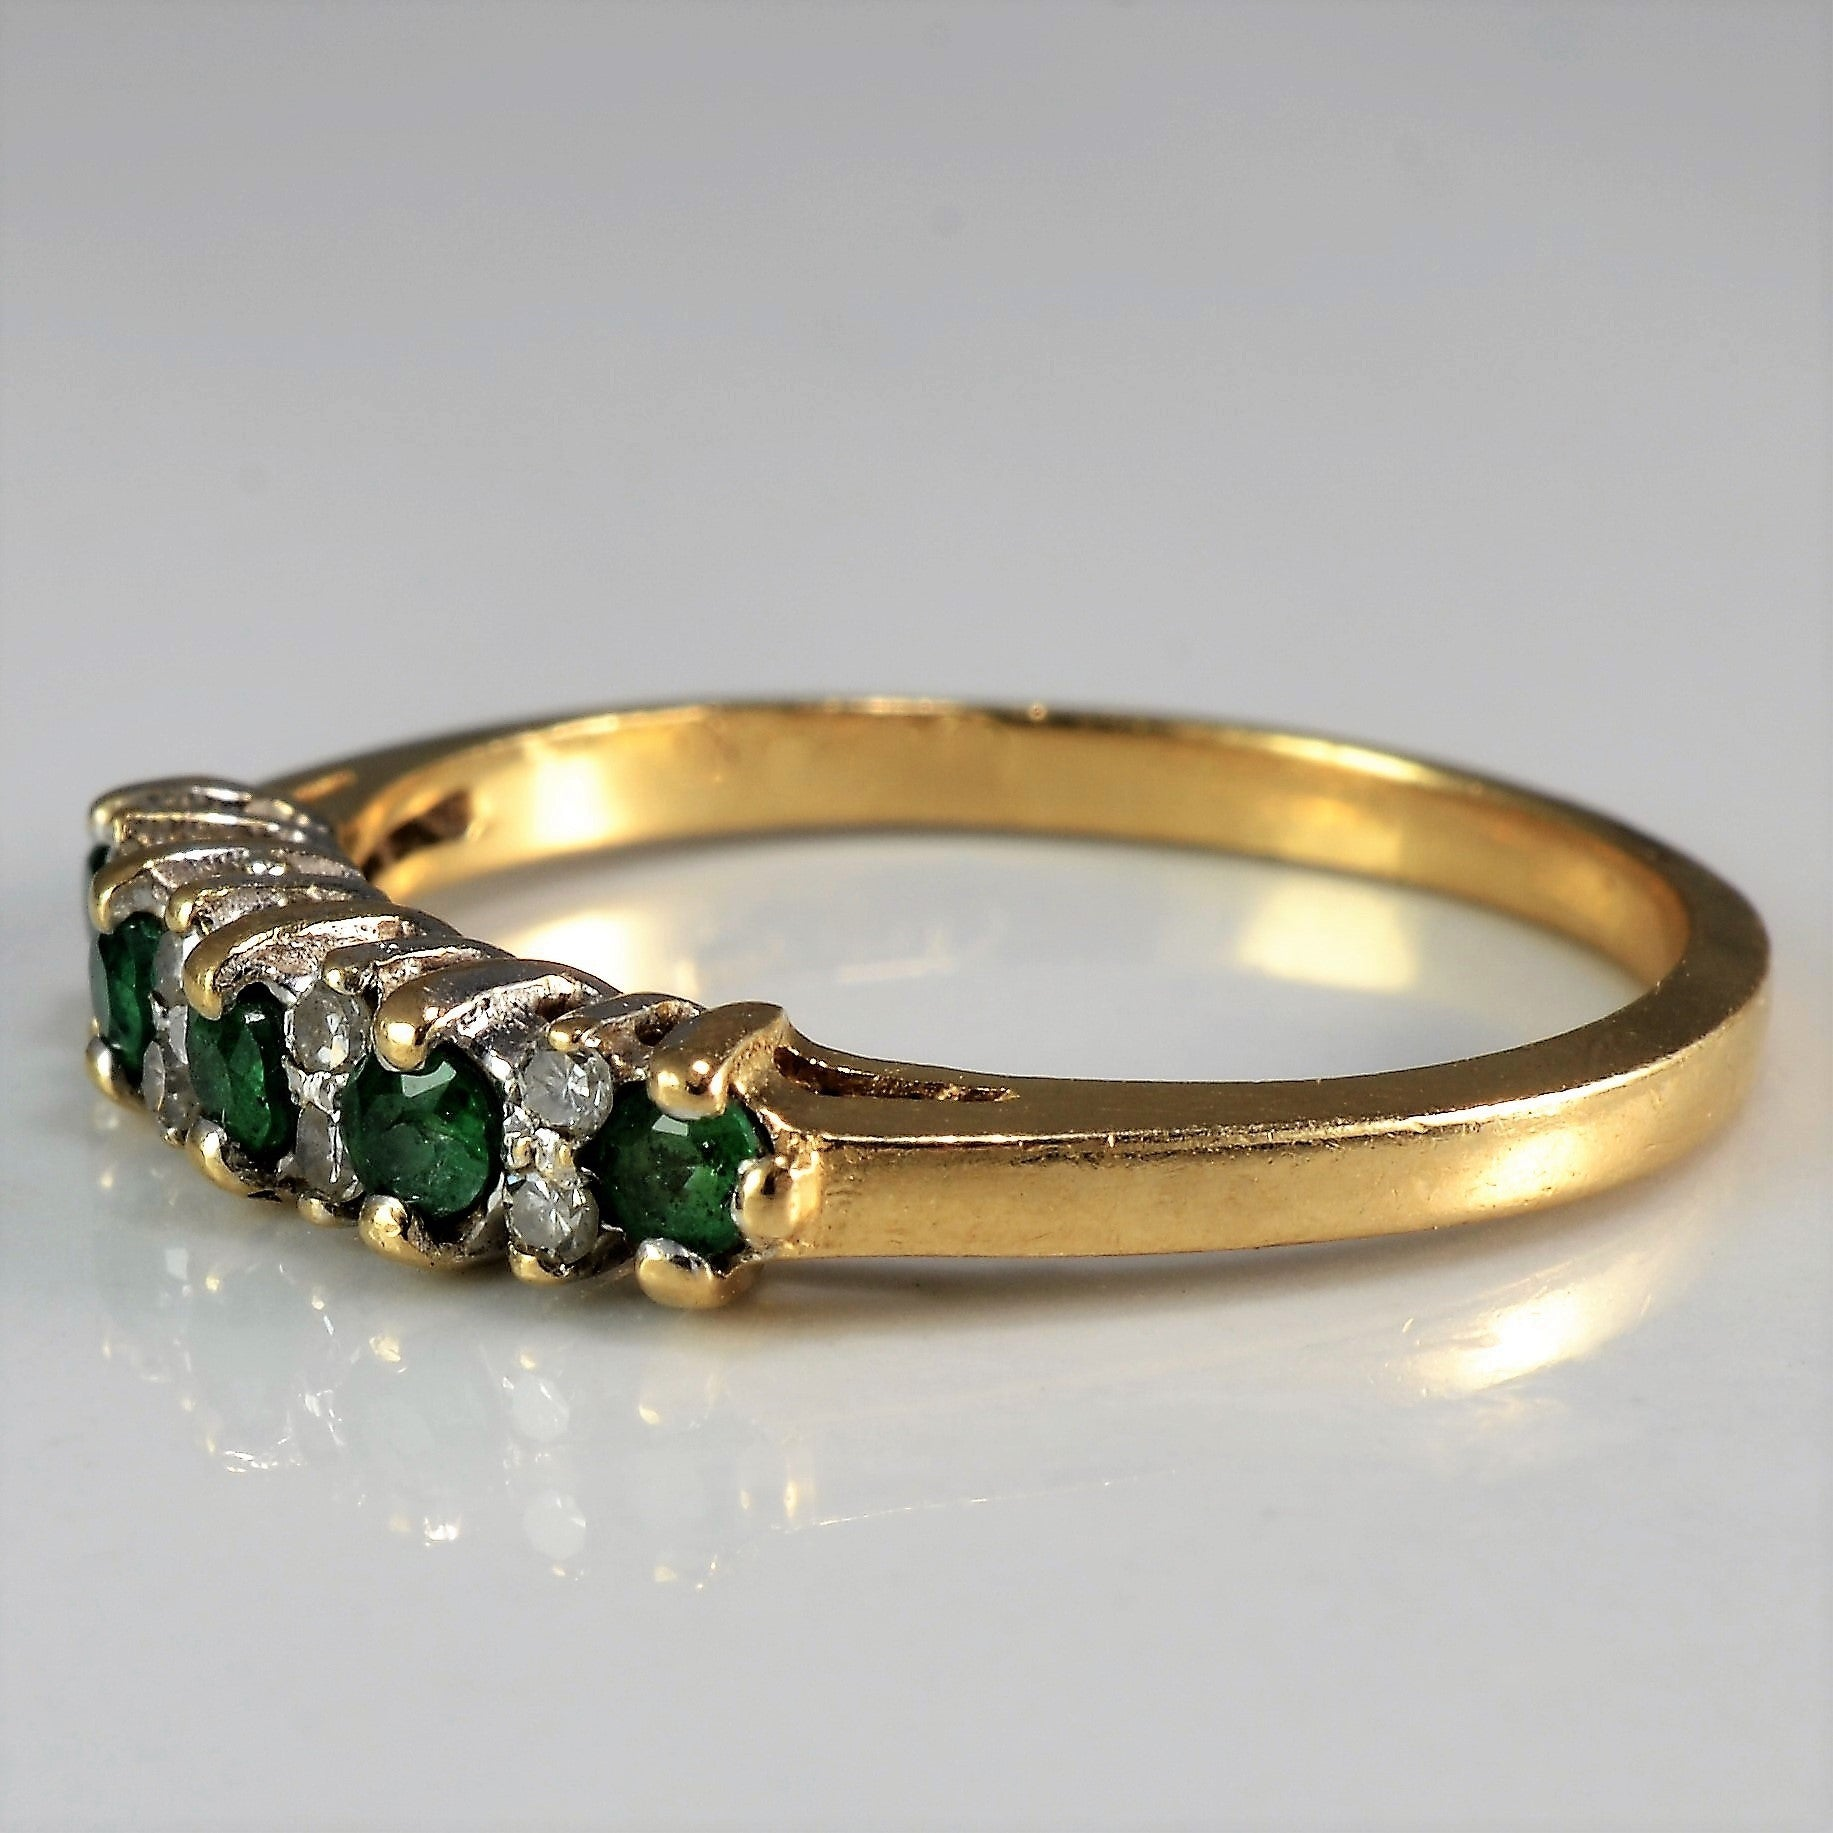 Elegant Emerald & Diamond Ring | 0.08 ctw, SZ 6.25 |